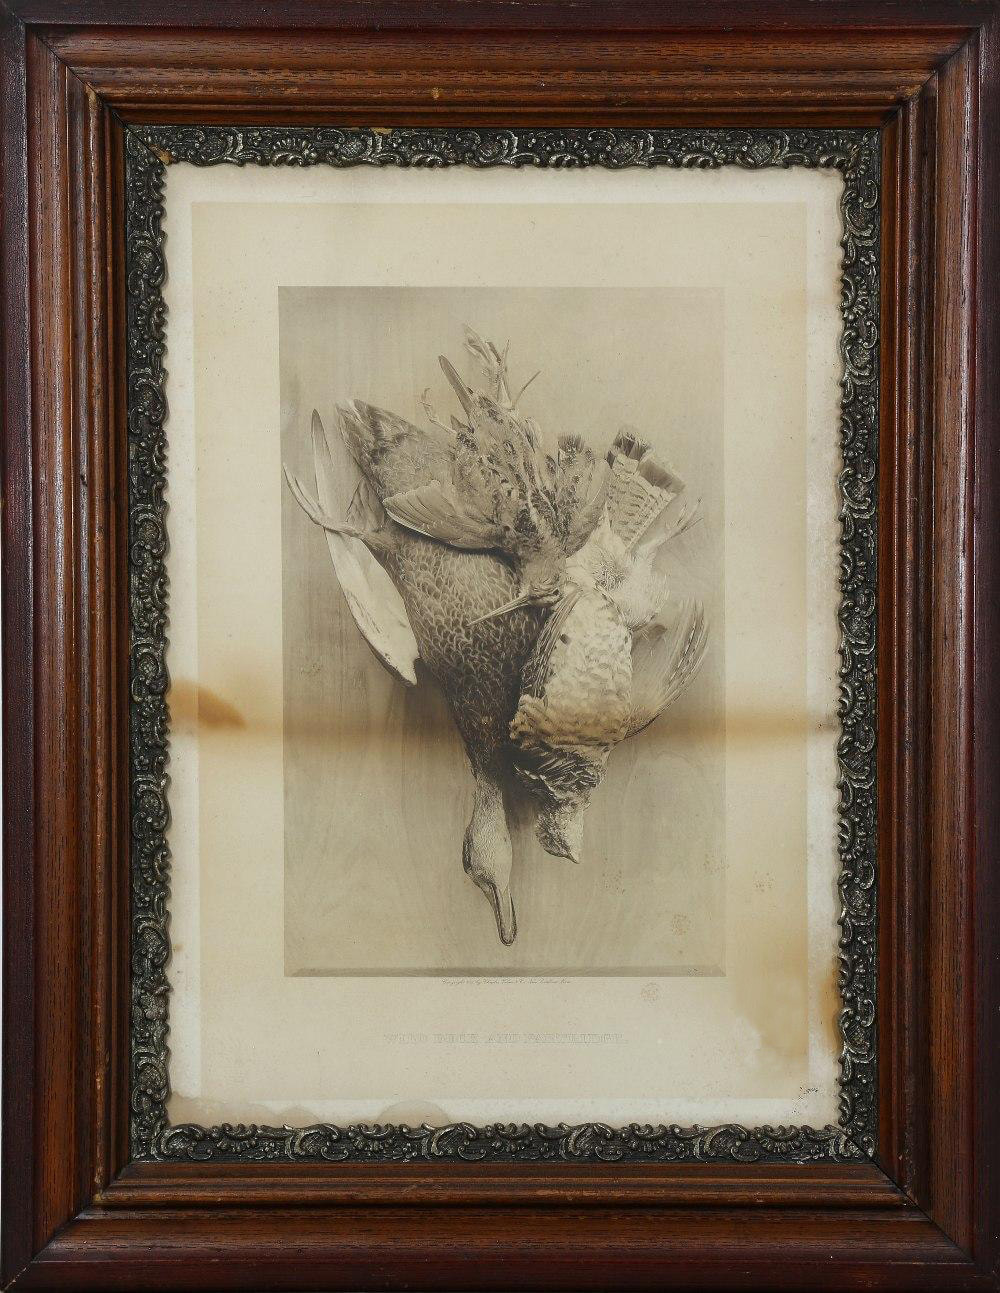 Rare late 19th century photogravure titled Wild Duck and Partridge by Charles Taber & Co.